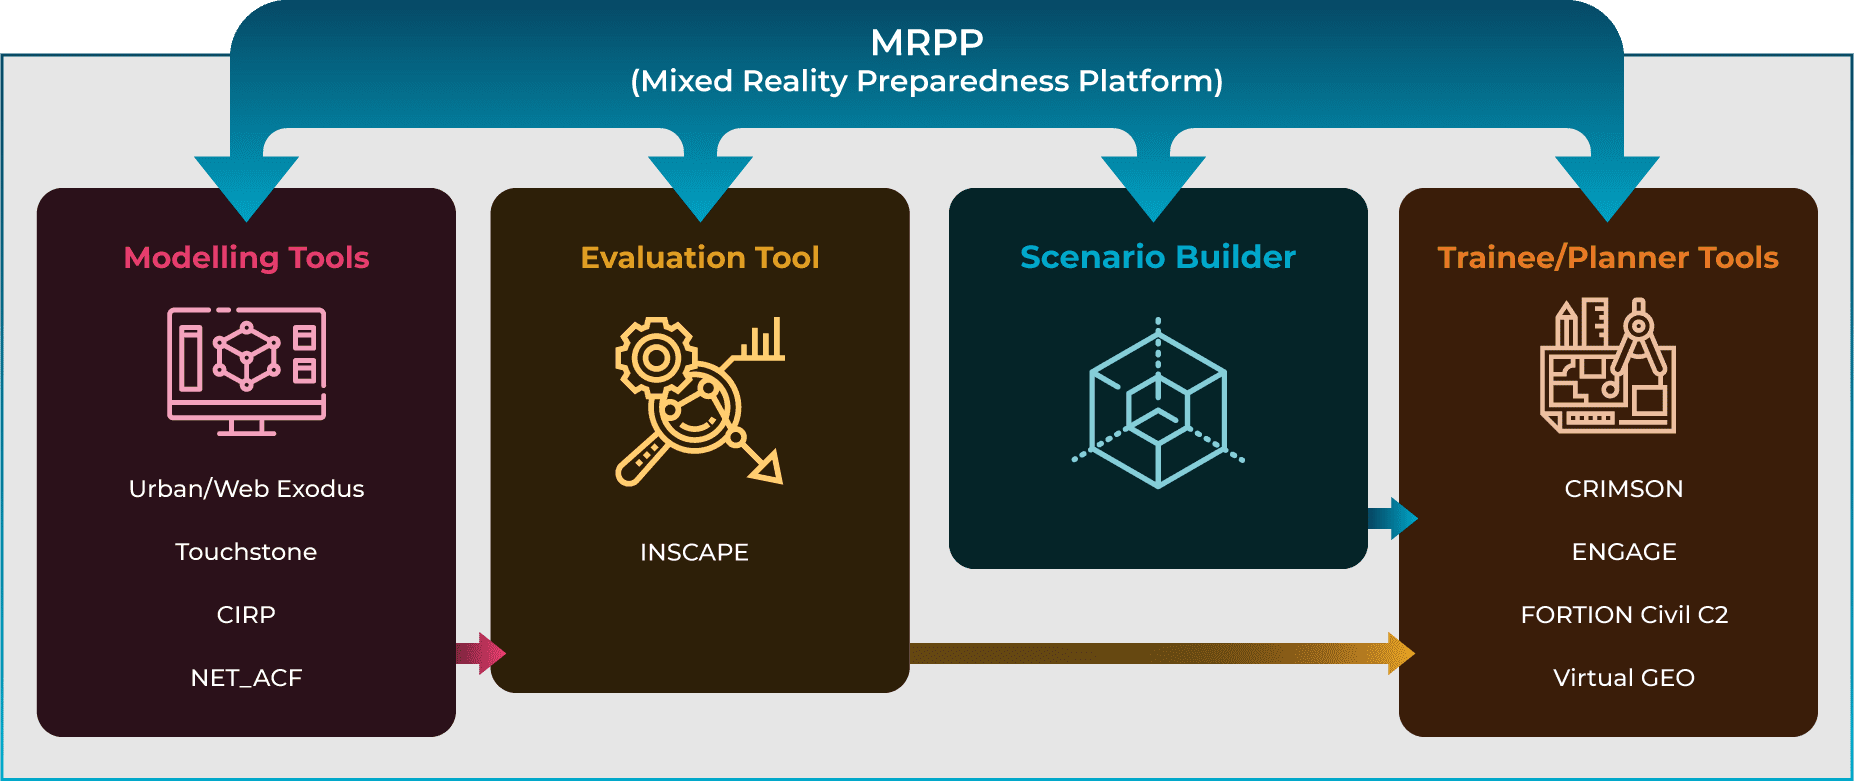 How does the MRPP work?